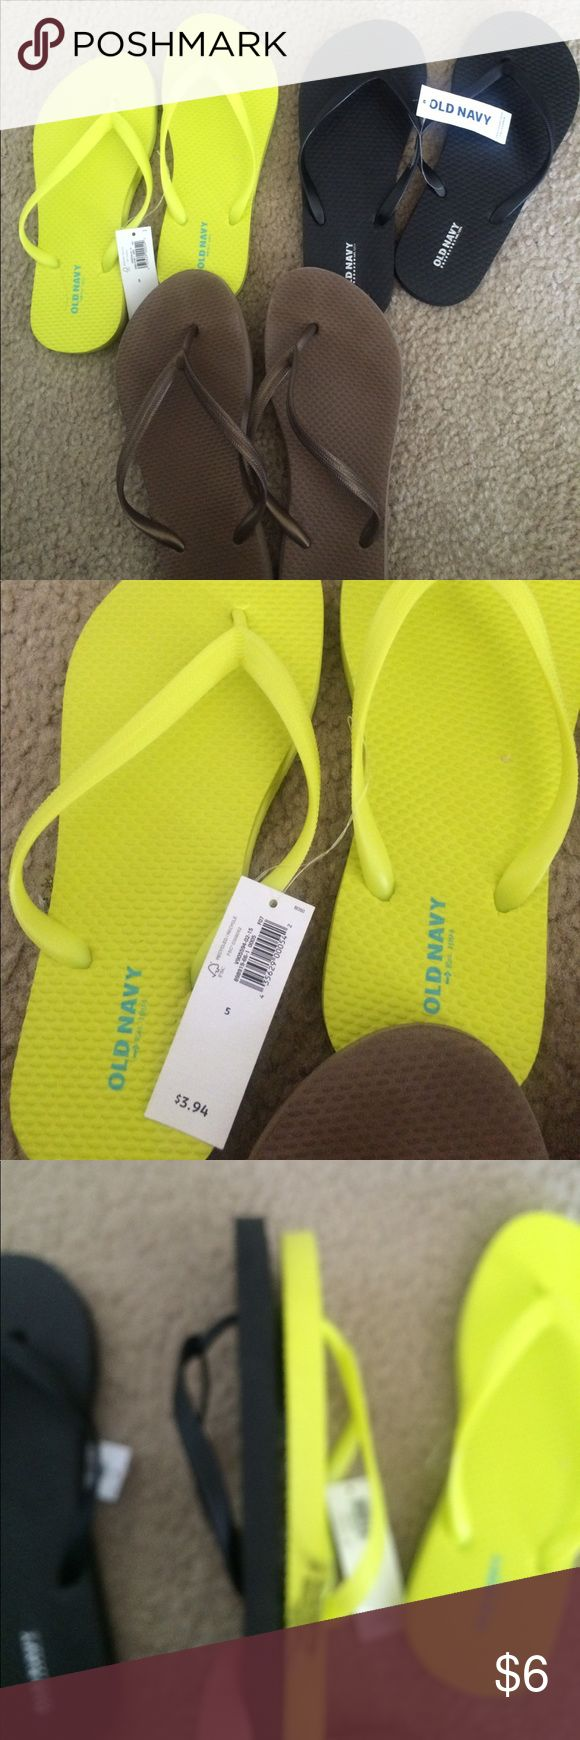 Old navy flip flop bundle size 5 Two brand new old navy flips flops. Blacks ones are labeled kids 3-4 but for size five see comparison picture. The neon pair are labeled size 5. The gold pair are used size 5 throwing them in here for free! Old Navy Shoes Sandals